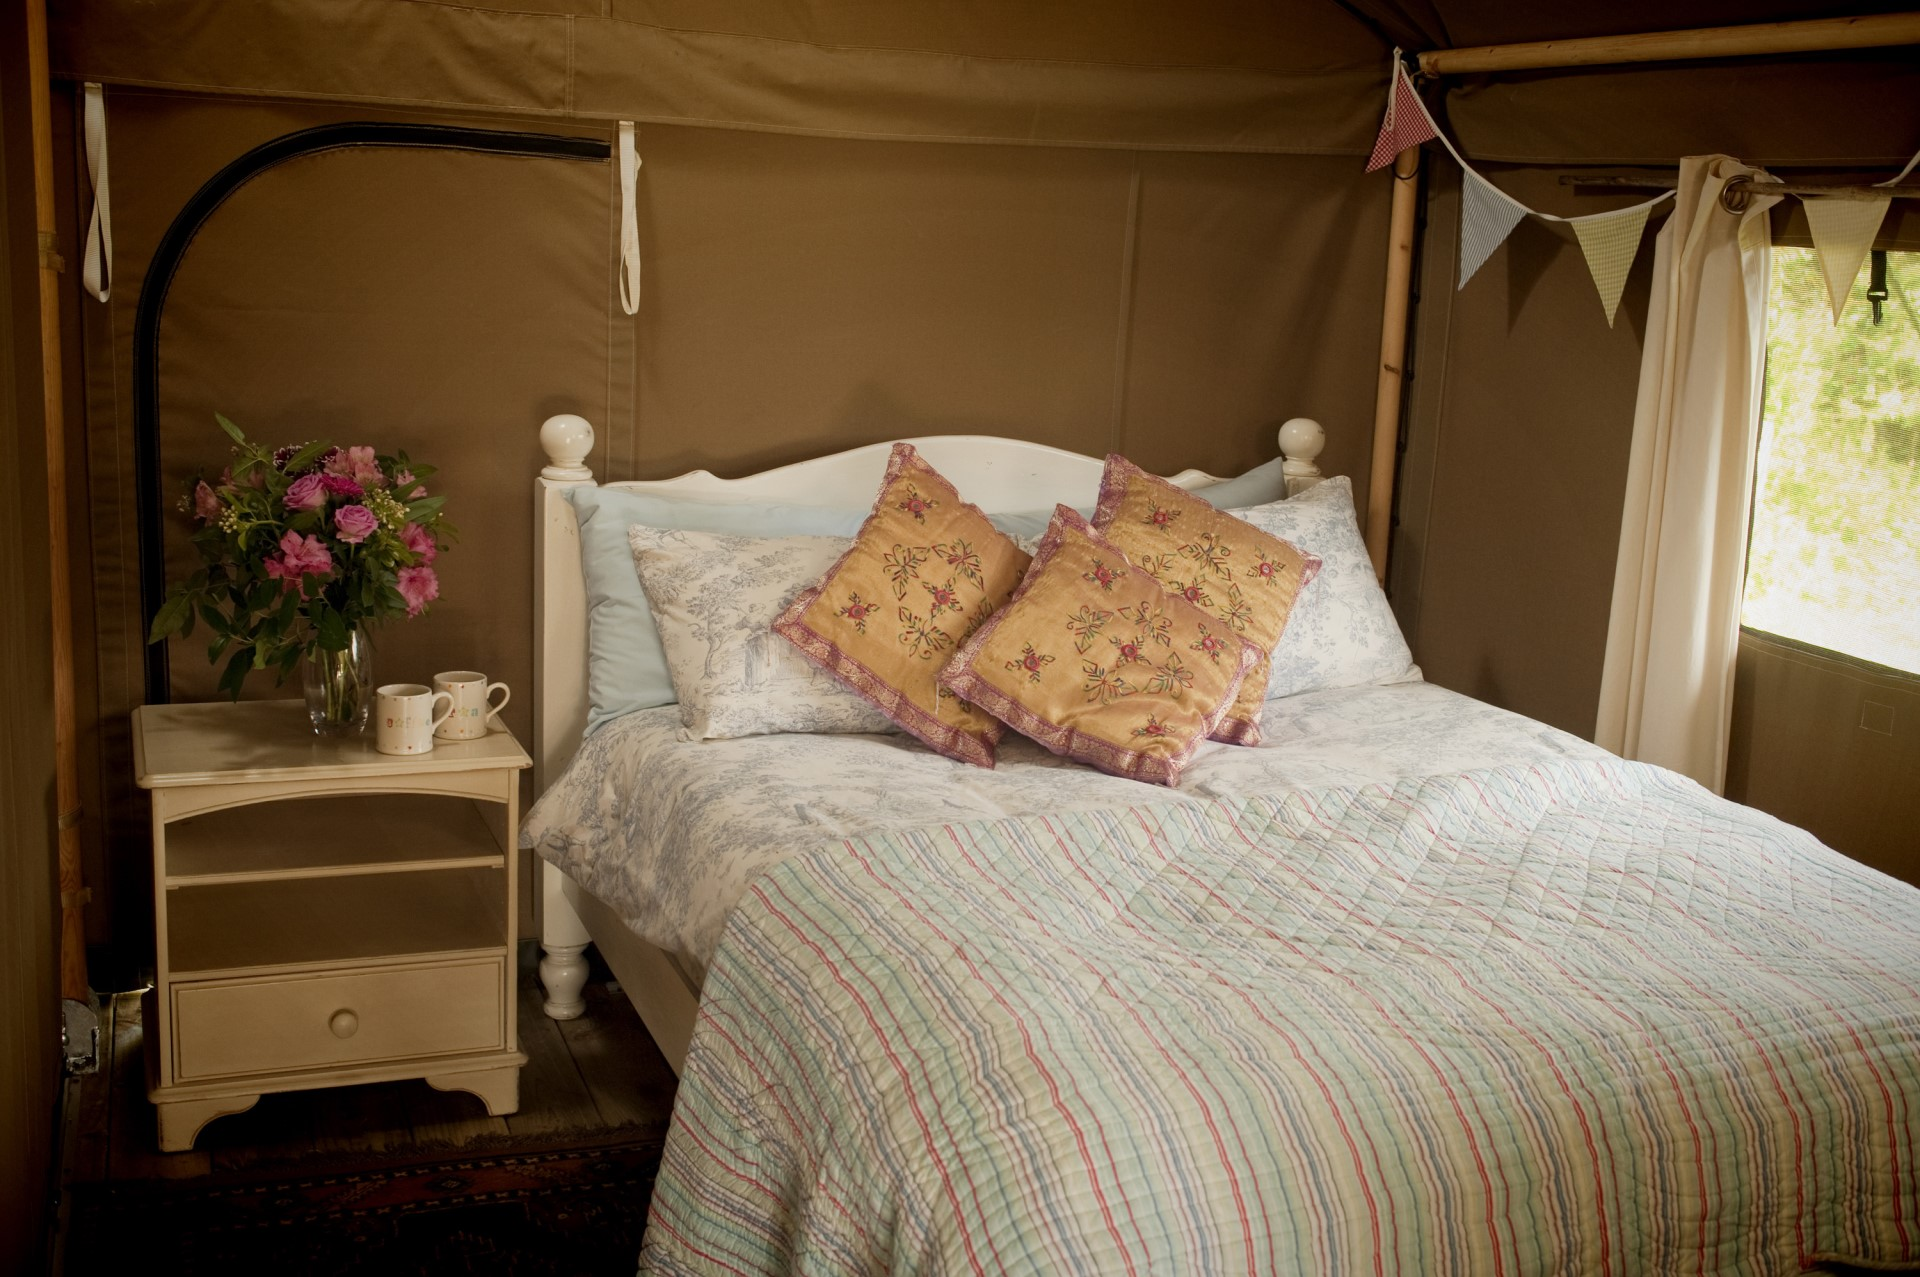 Daisy Safari Tent at Cuckoo Down Farm